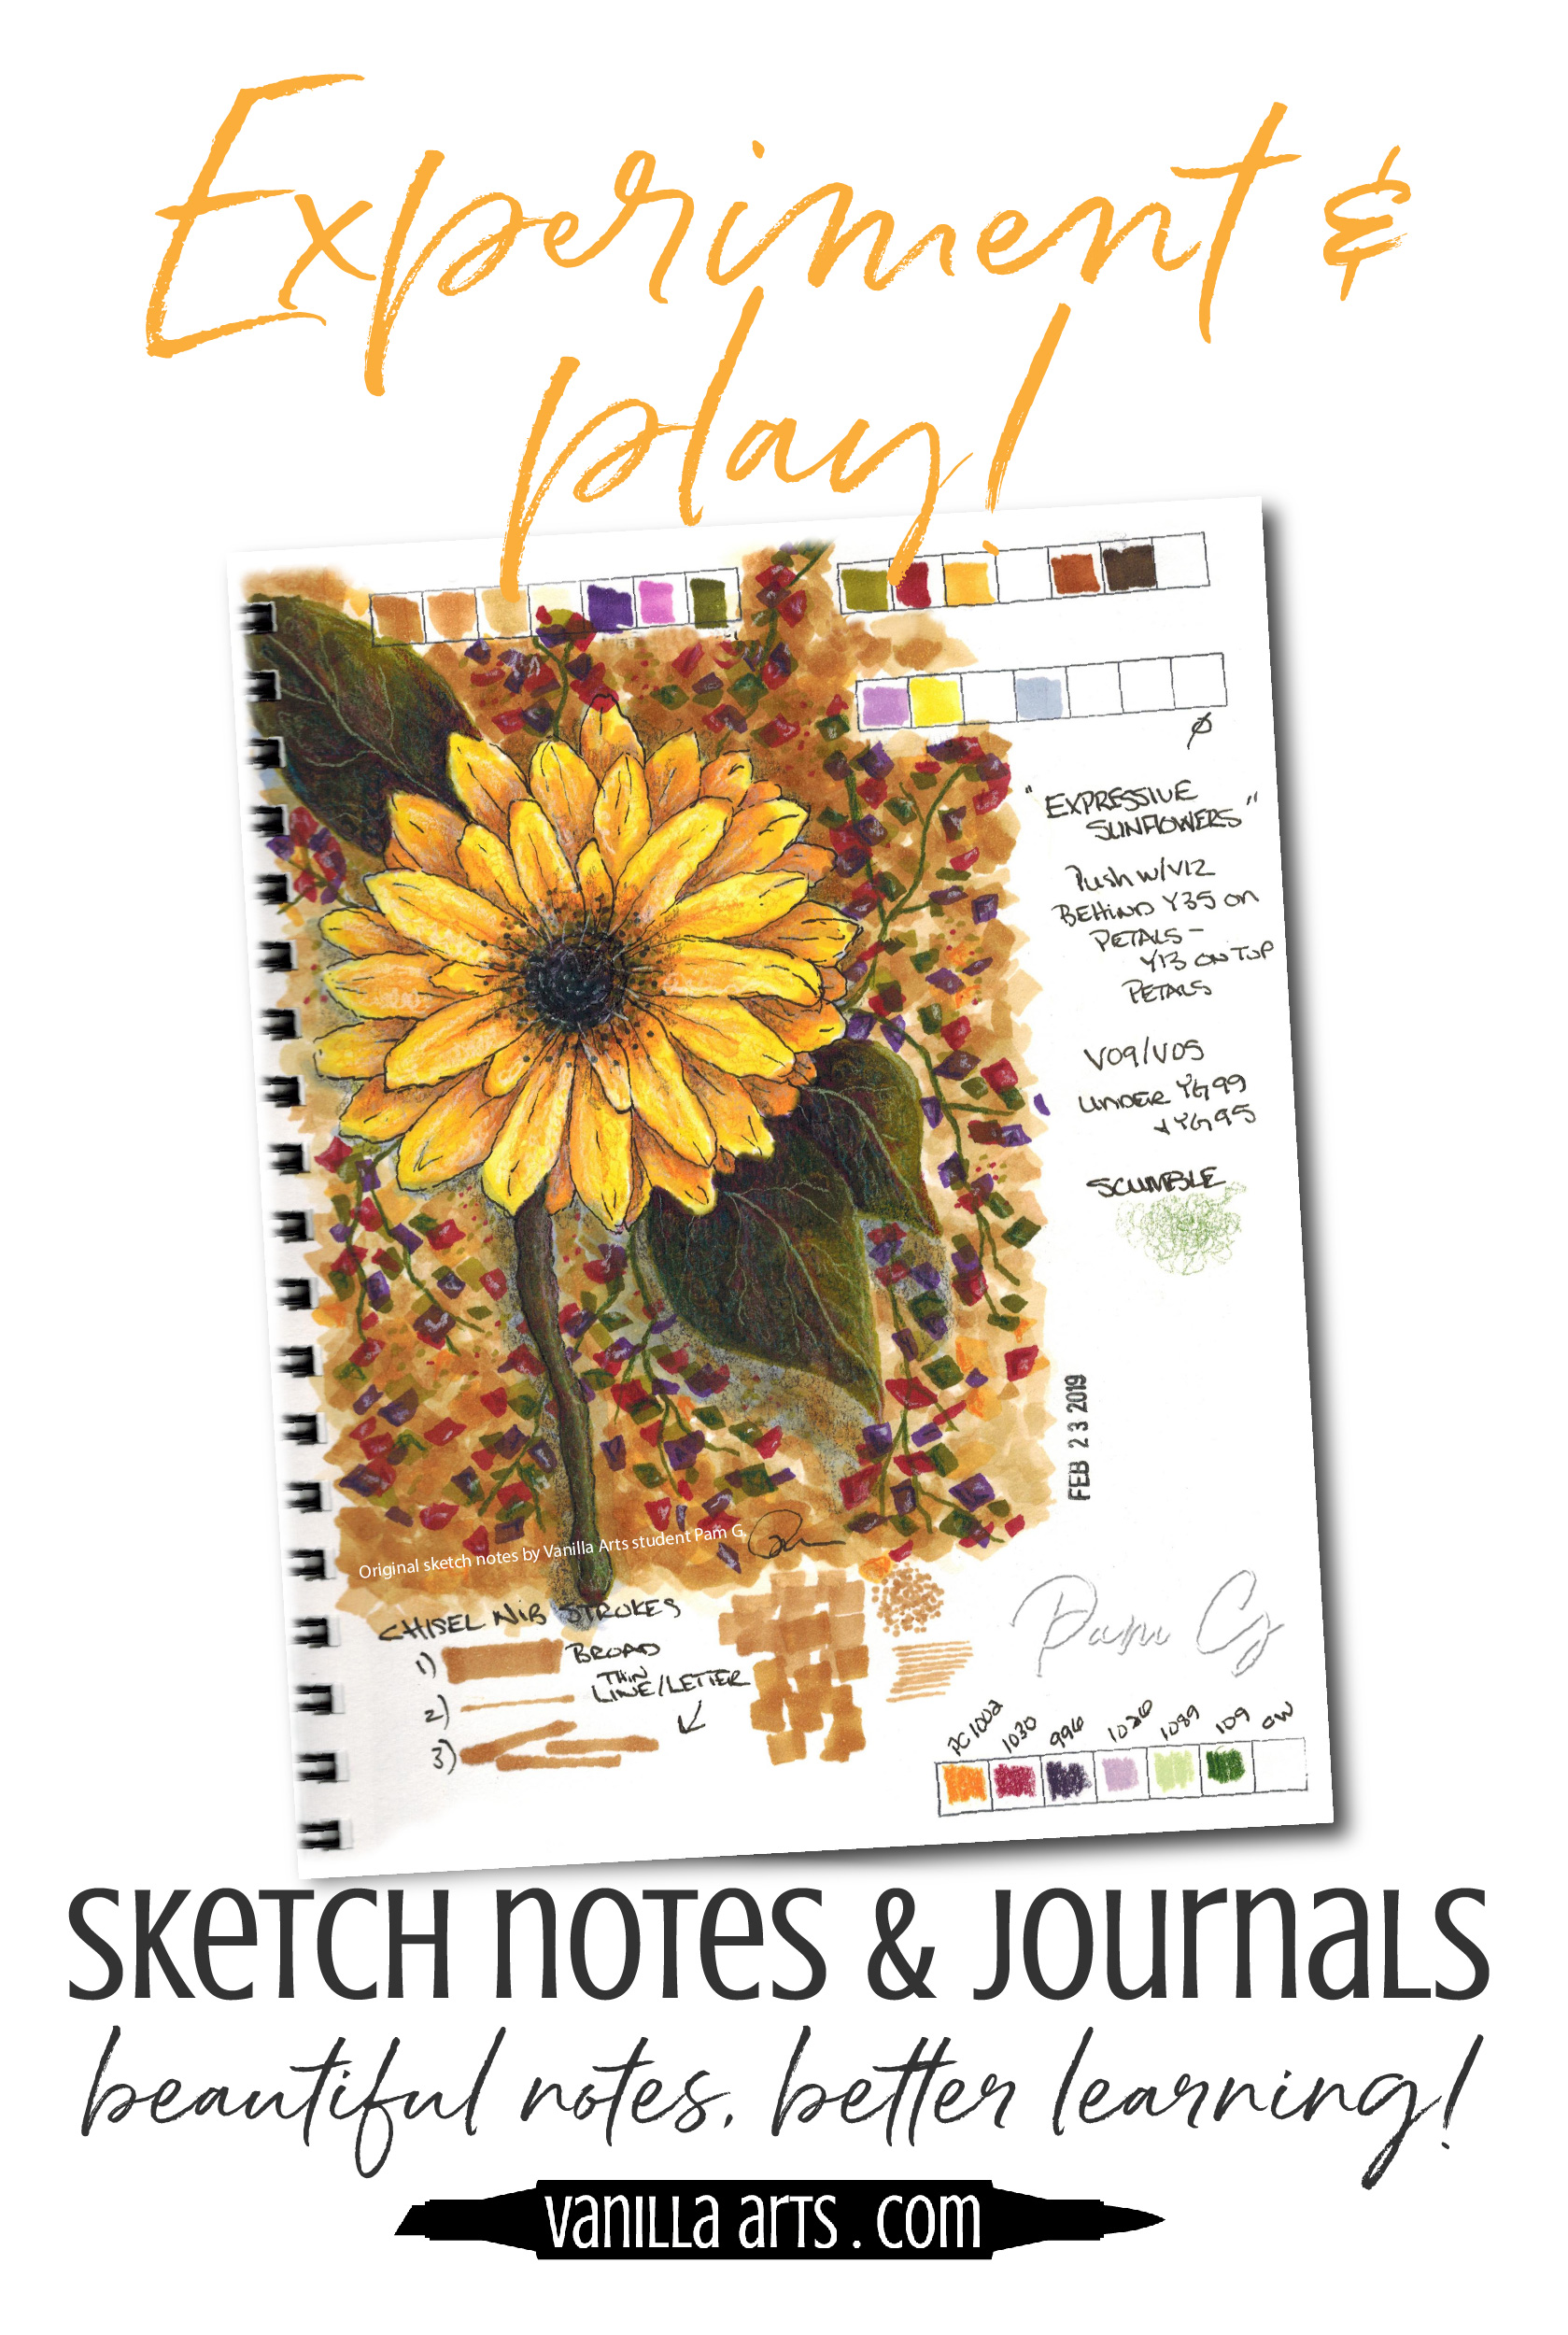 Do you want to start a daily art journaling practice? Doodle artist Pam shares her tips for mixed media and Copic Marker experiments. Take artistic notes and make original art! | VanillaArts.com | #artjournal #copicmarker #sketchjournal